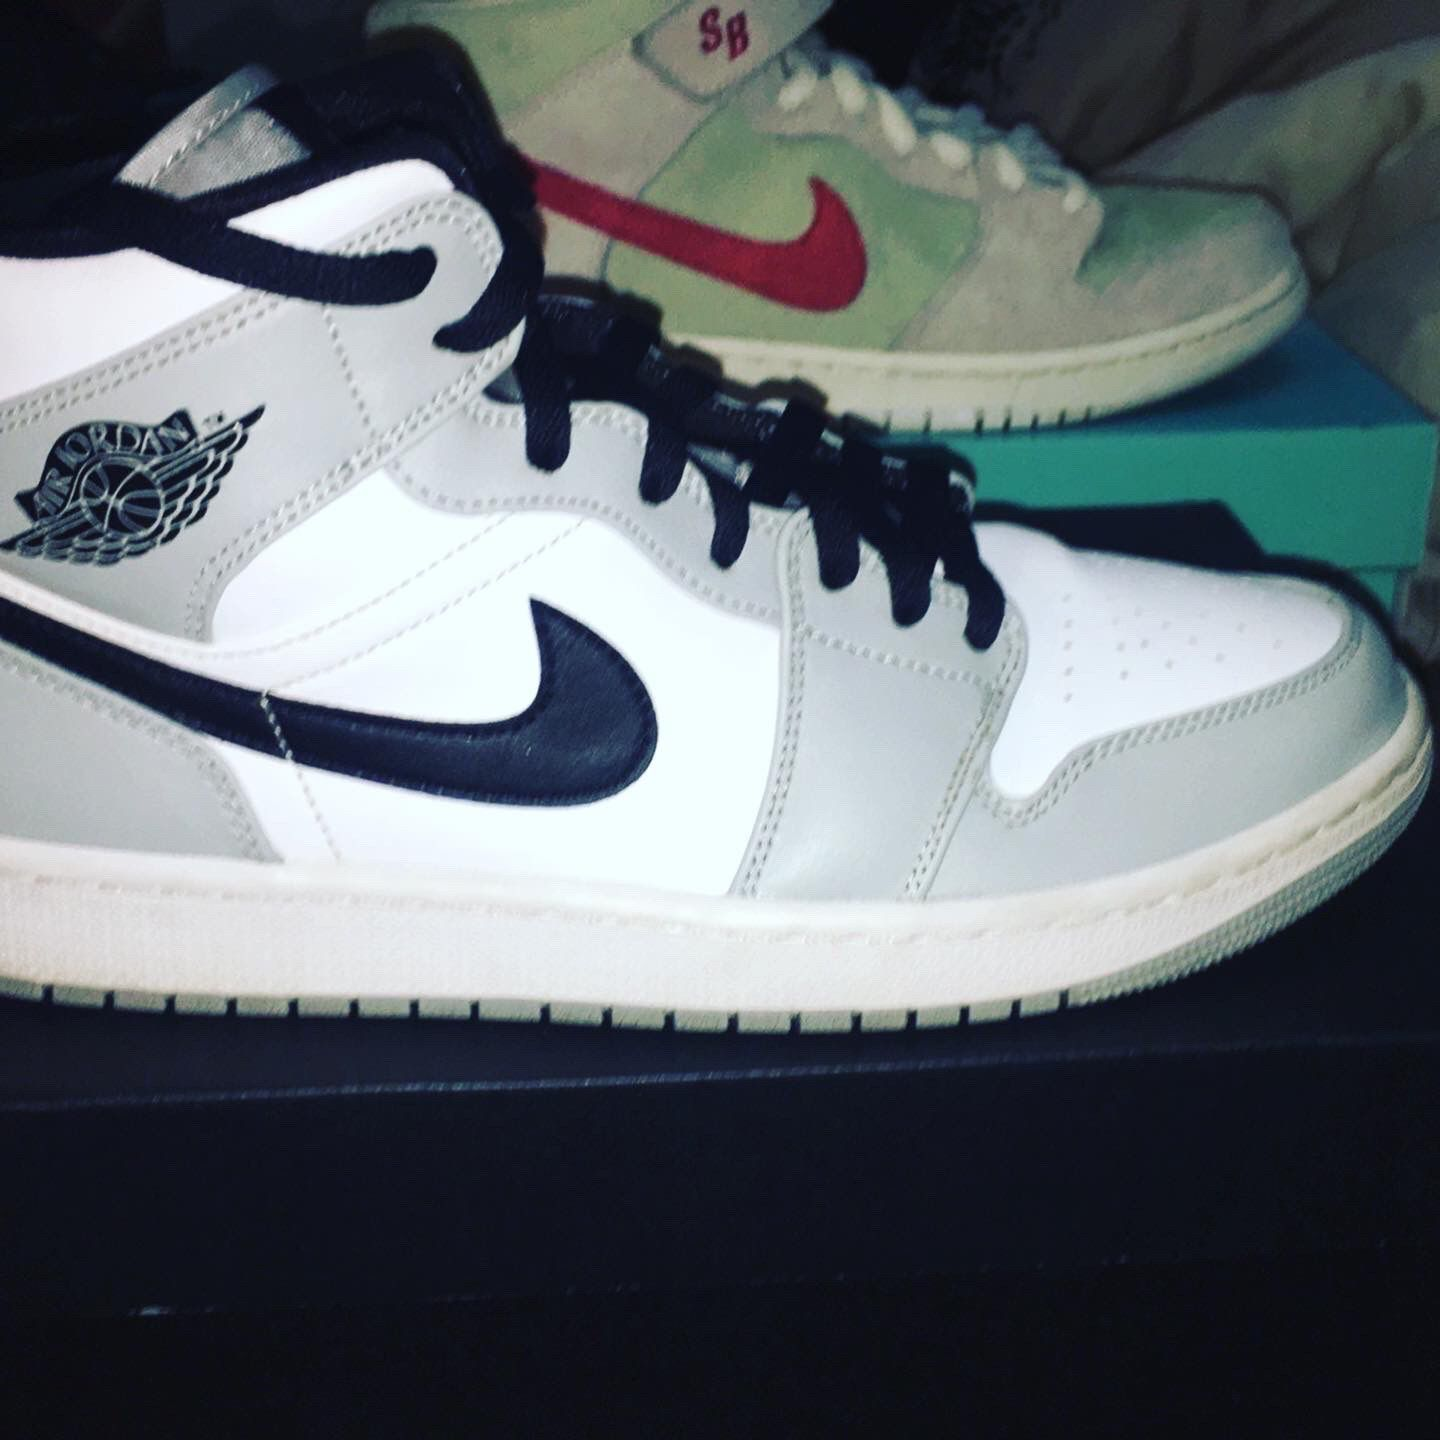 Shoes Sneakers, Nike Dunks, Jordan's, Air Max 270, Size 9 And 9.5